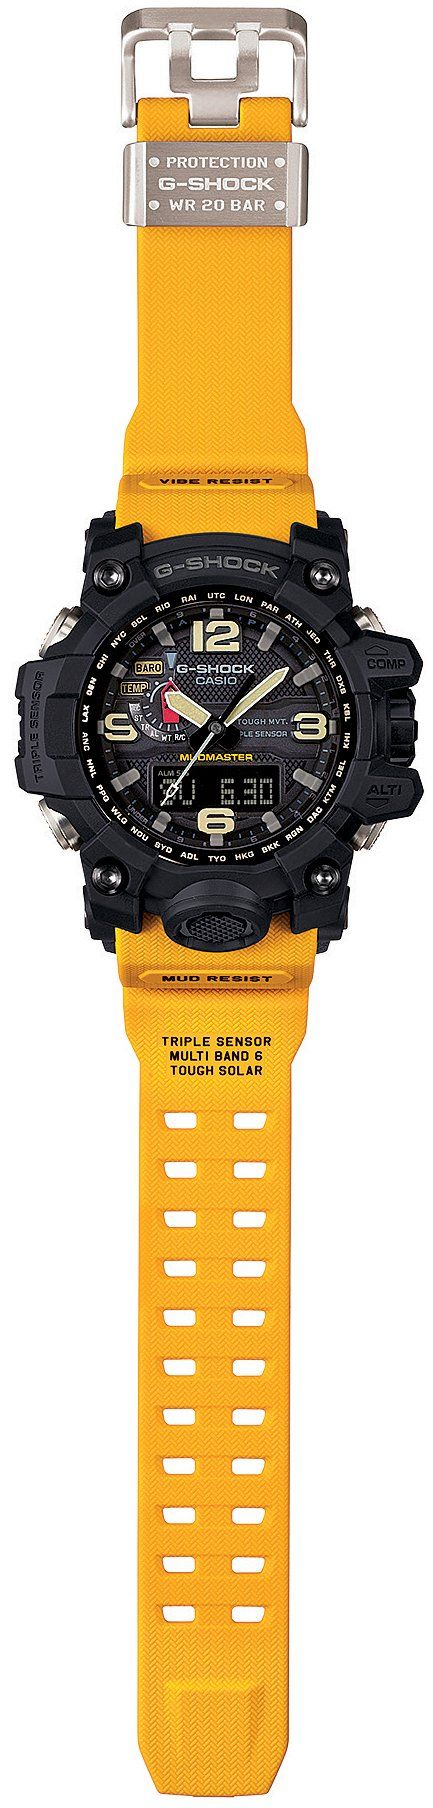 Amazon.co.jp:CASIO G-SHOCK MUDMASTER GWG-1000-1A9JF